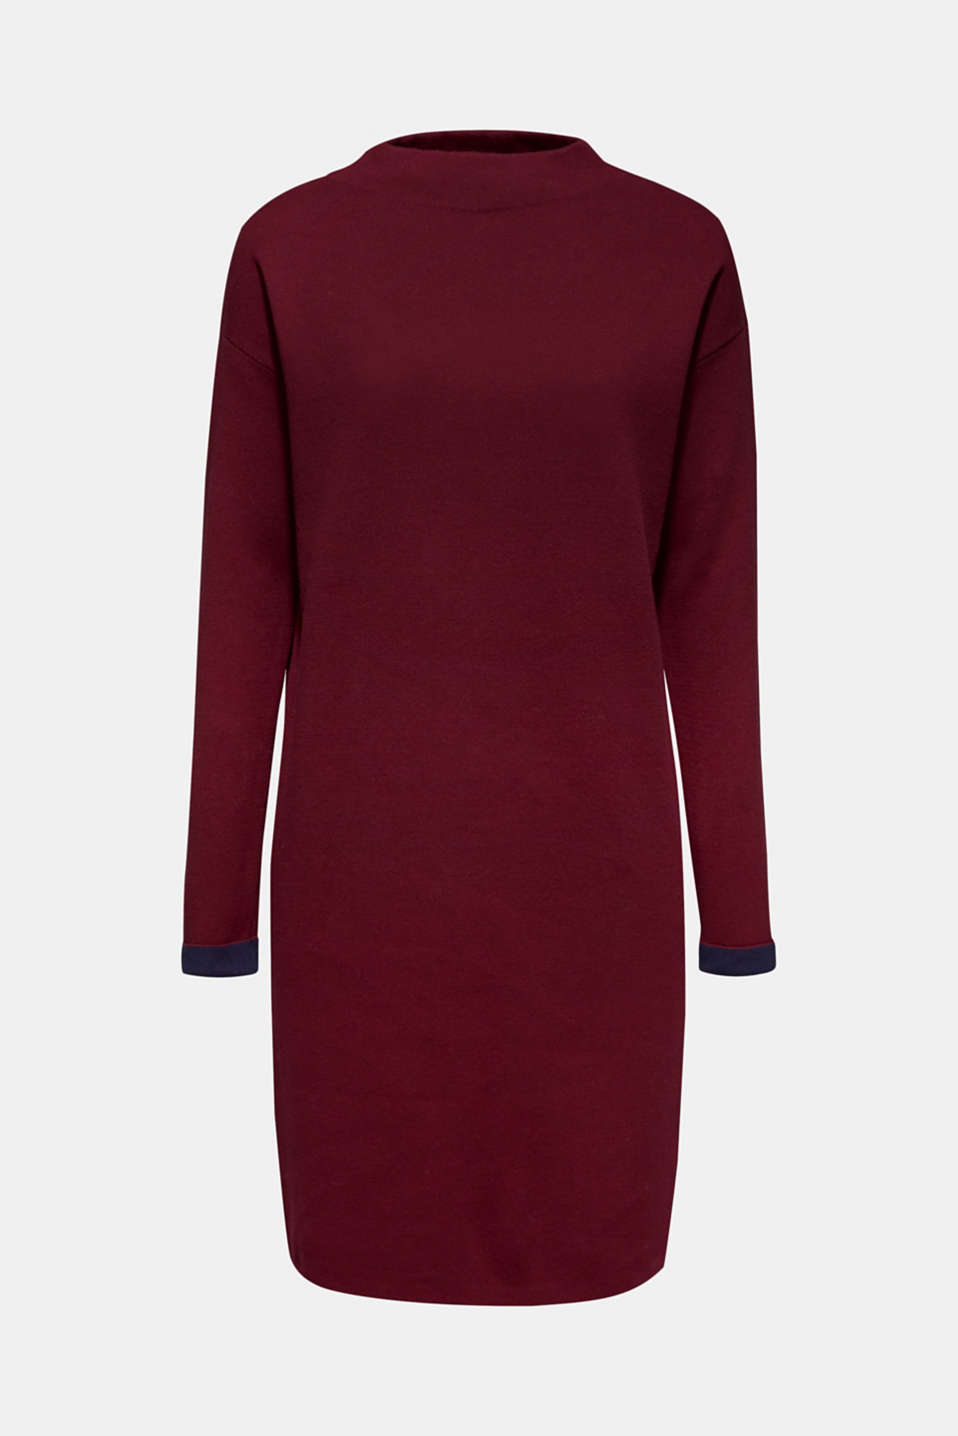 Dress in double-faced knit fabric, GARNET RED, detail image number 7